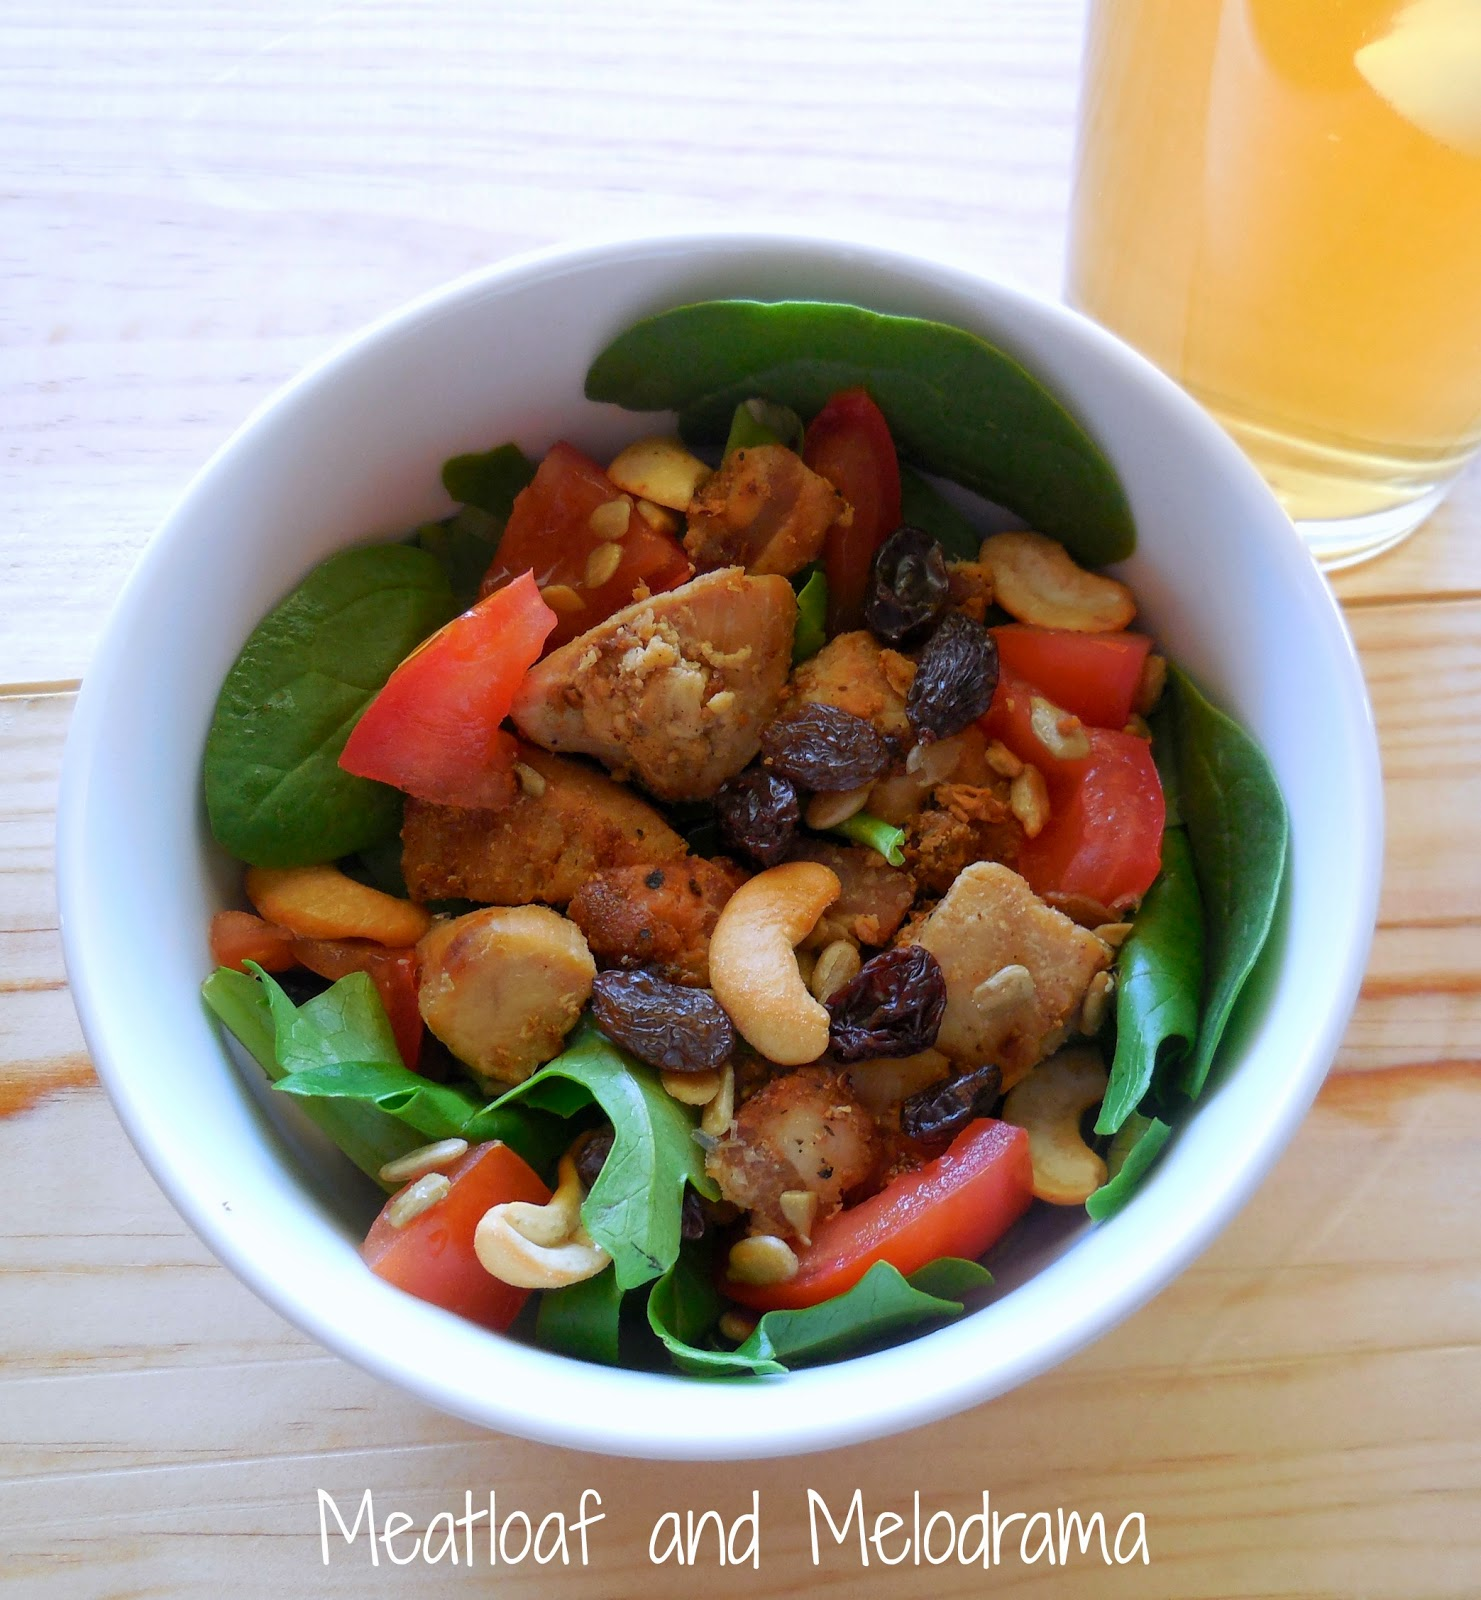 mixed salad greens topped with chicken bacon tomatoes raisins